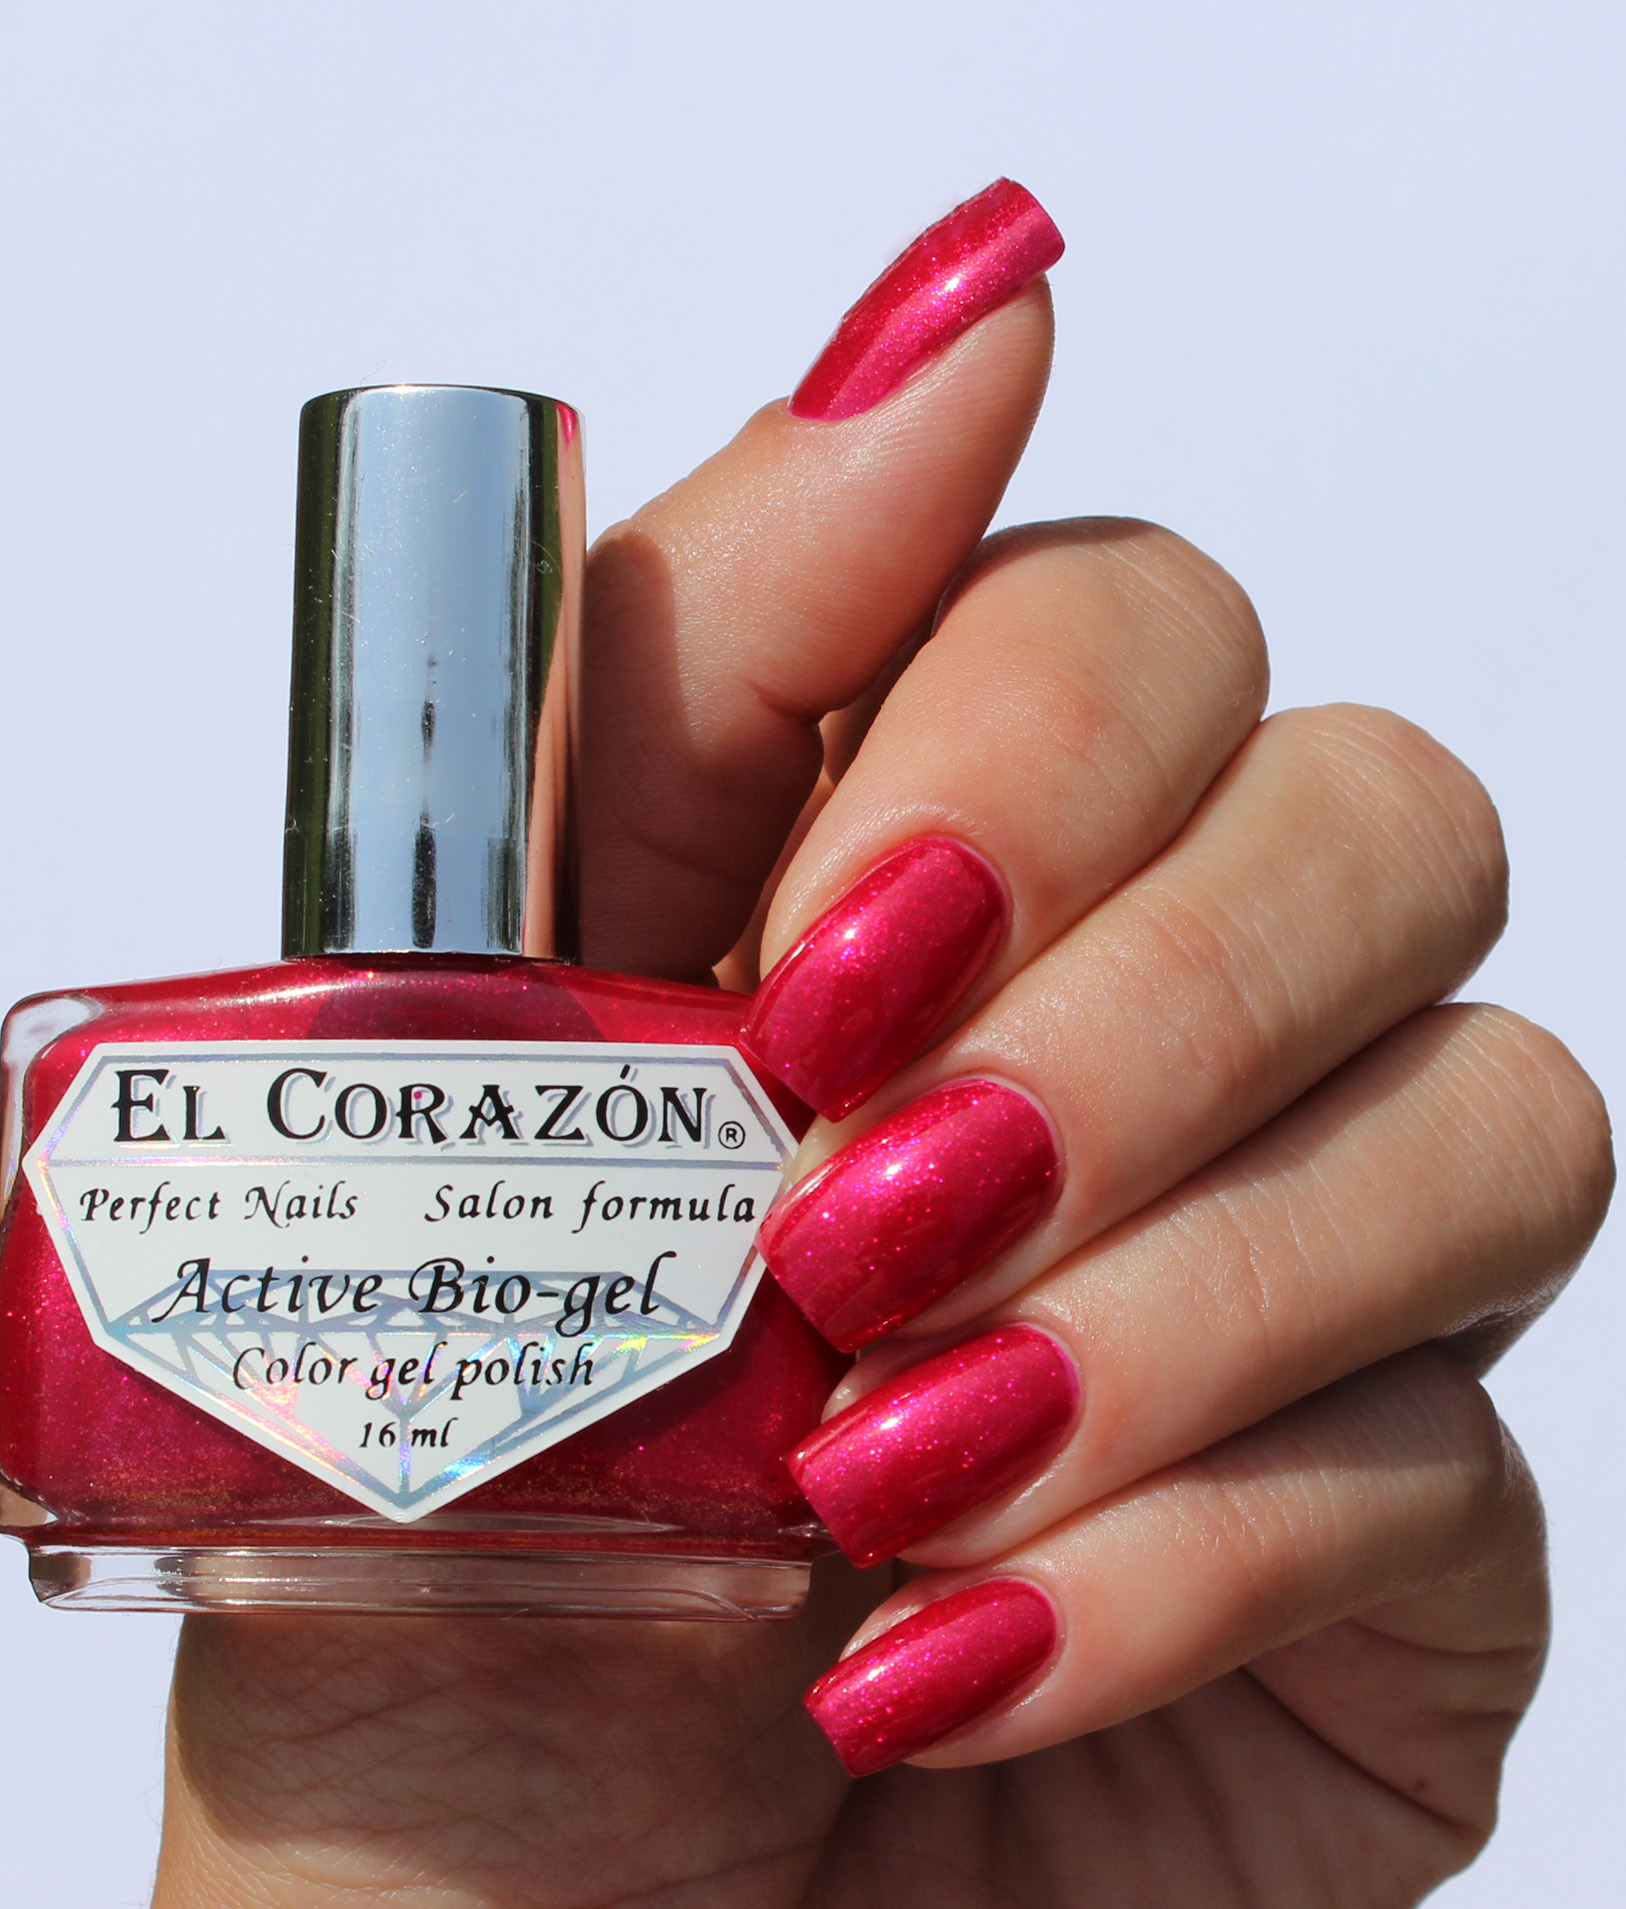 EL Corazon Active Bio-gel Color gel polish Magic №423/570 Magic kiss of Venus